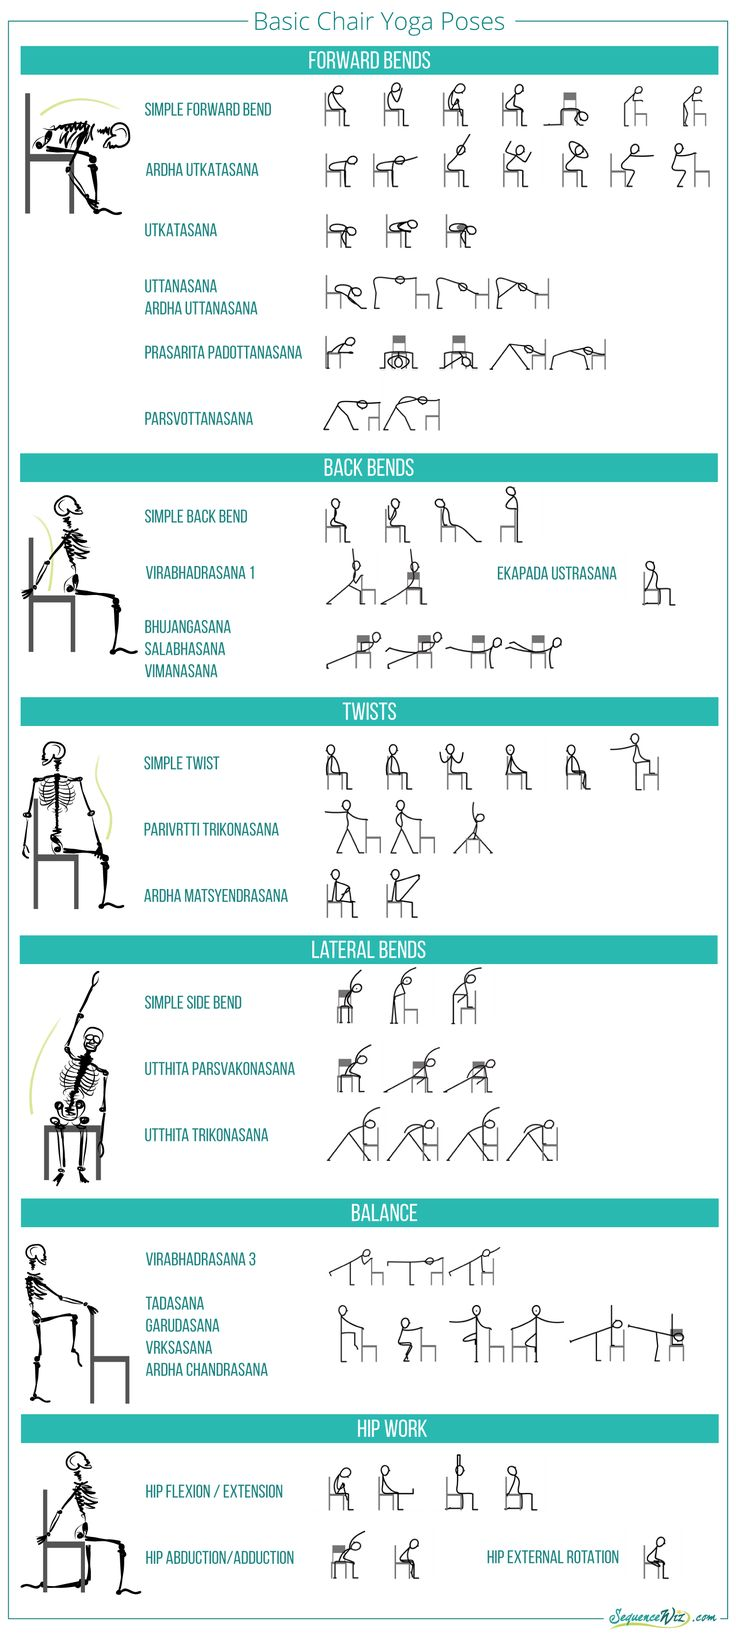 Basic chair yoga poses More More